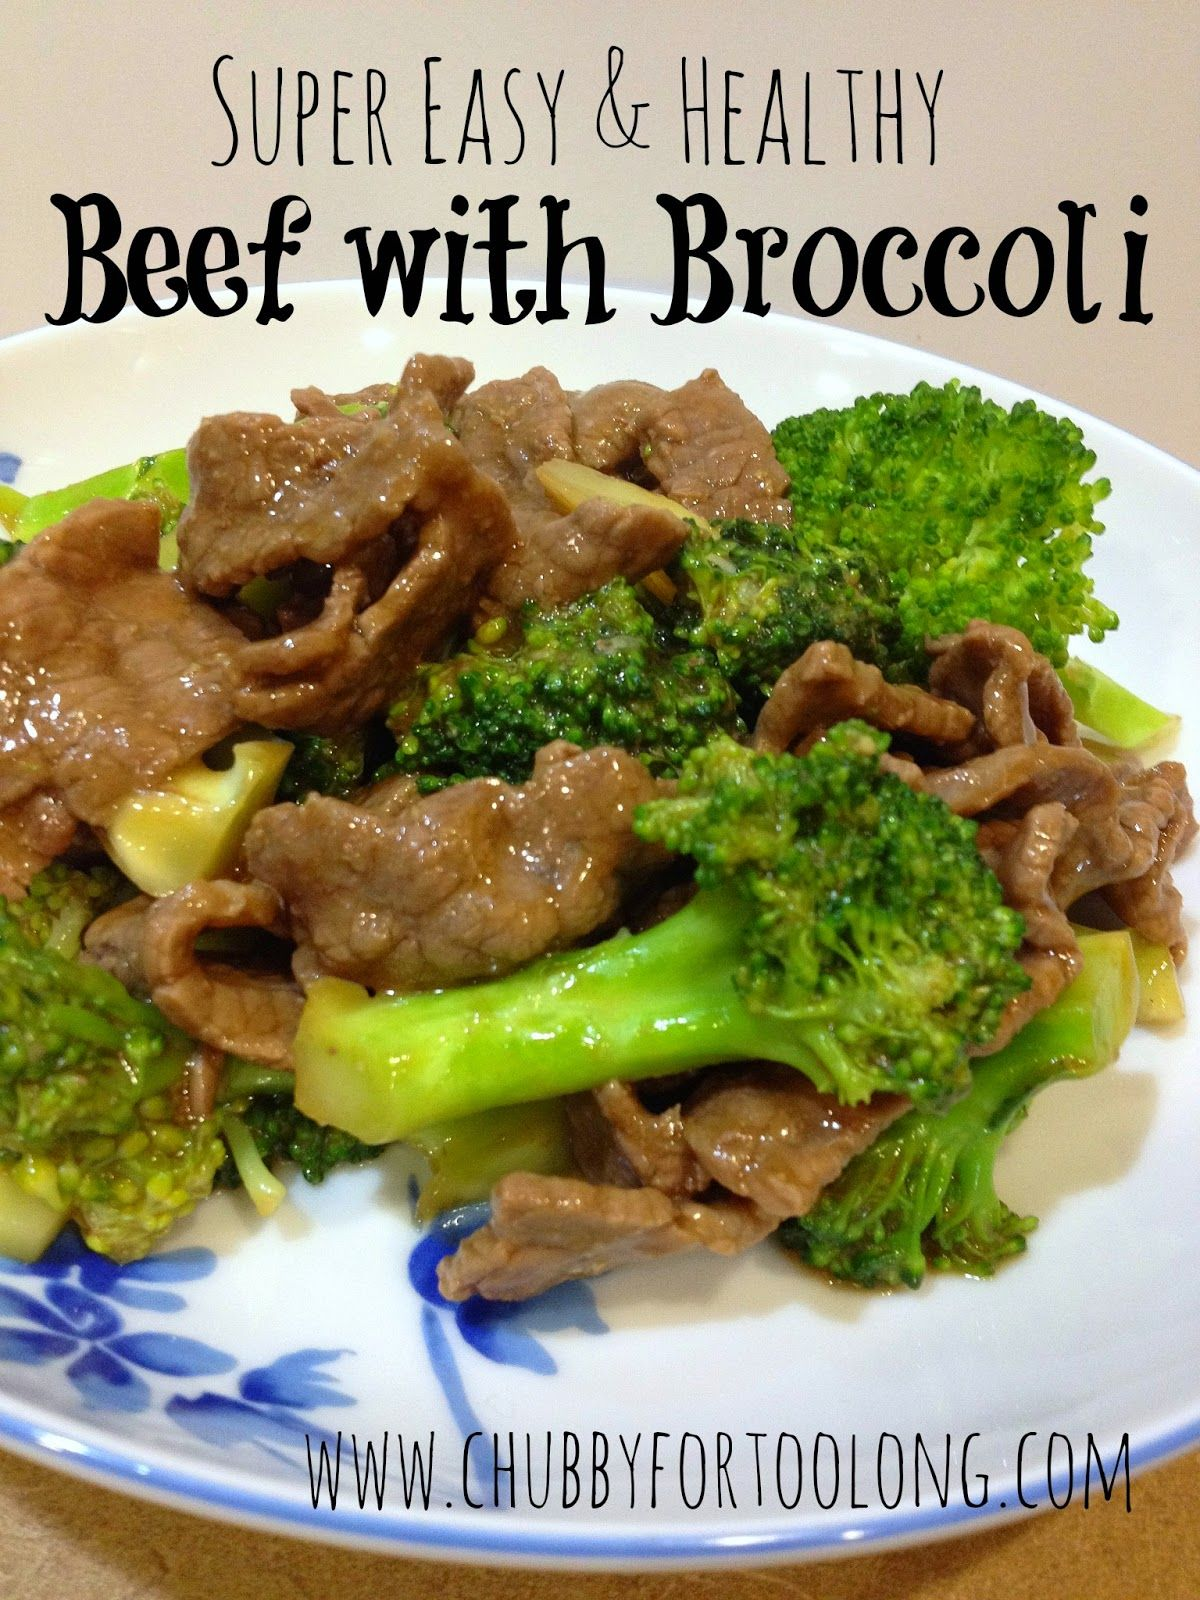 Chubby for too long easy and healthy beef with broccoli recipe easy and healthy beef with broccoli recipe forumfinder Gallery